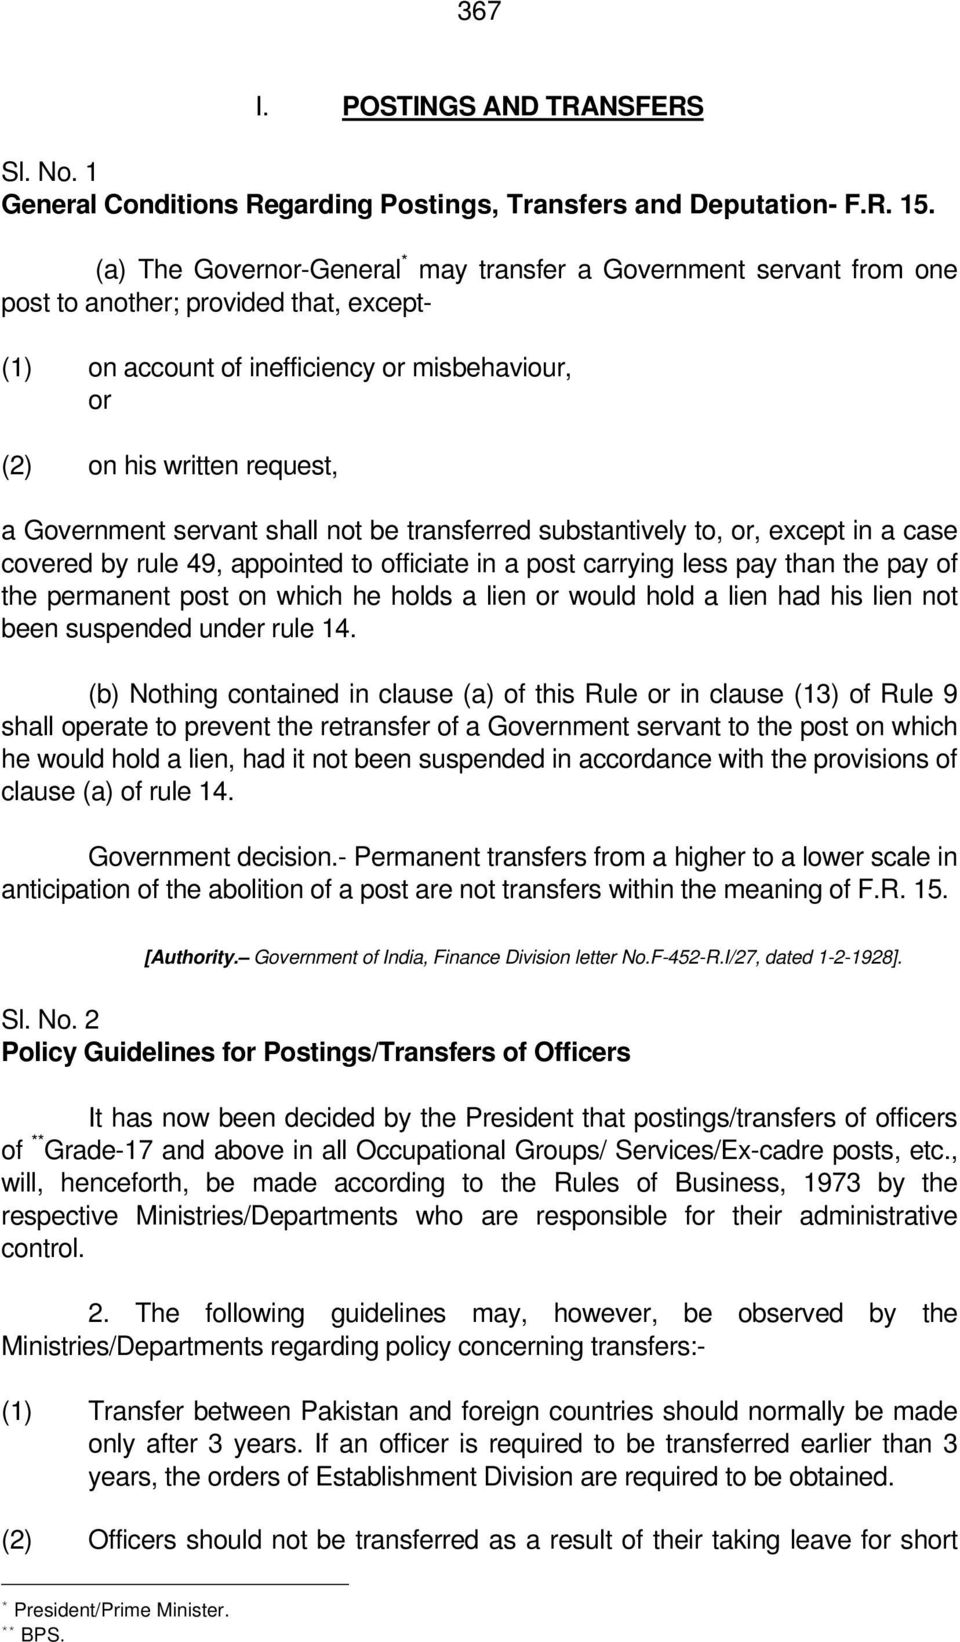 Government servant shall not be transferred substantively to, or, except in a case covered by rule 49, appointed to officiate in a post carrying less pay than the pay of the permanent post on which